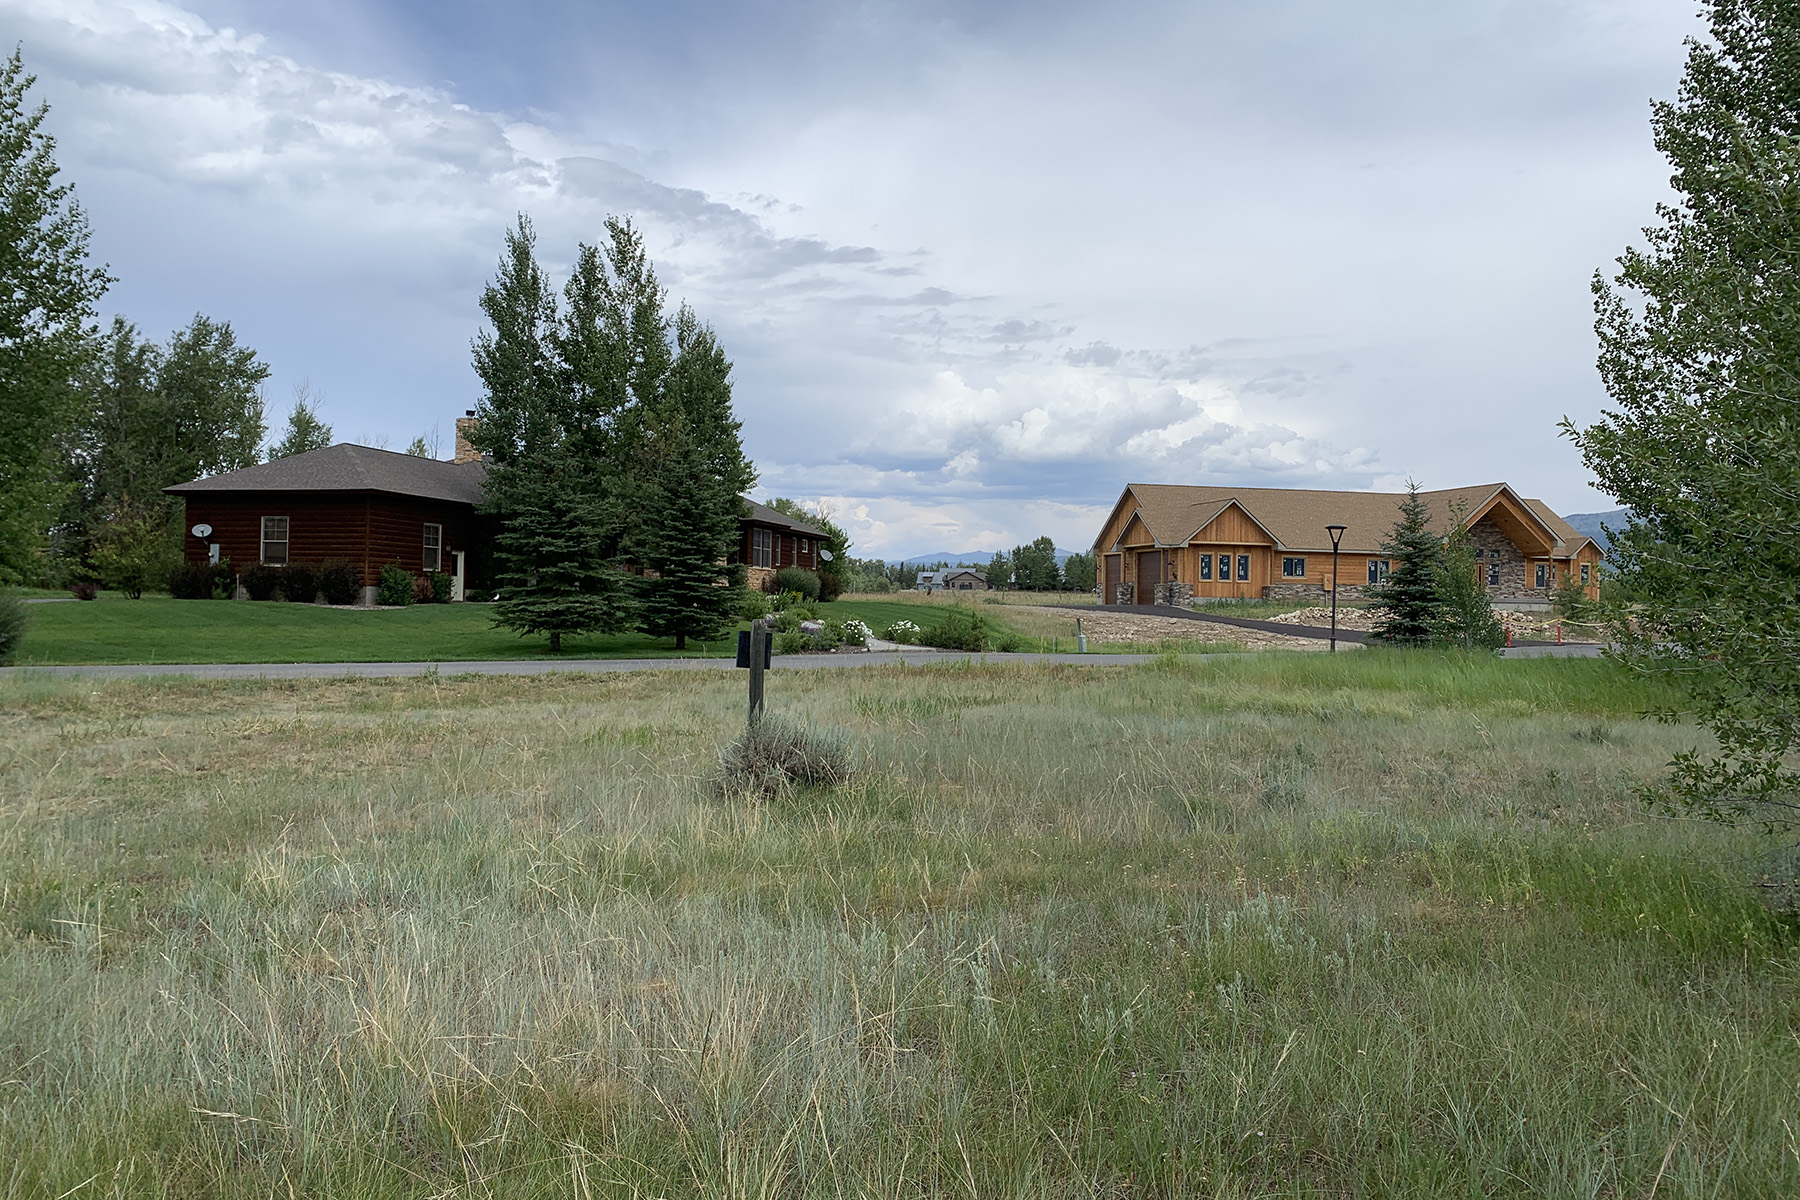 Land for Sale at 1247 MILLER RANCH RD Driggs, Idaho 83422 United States